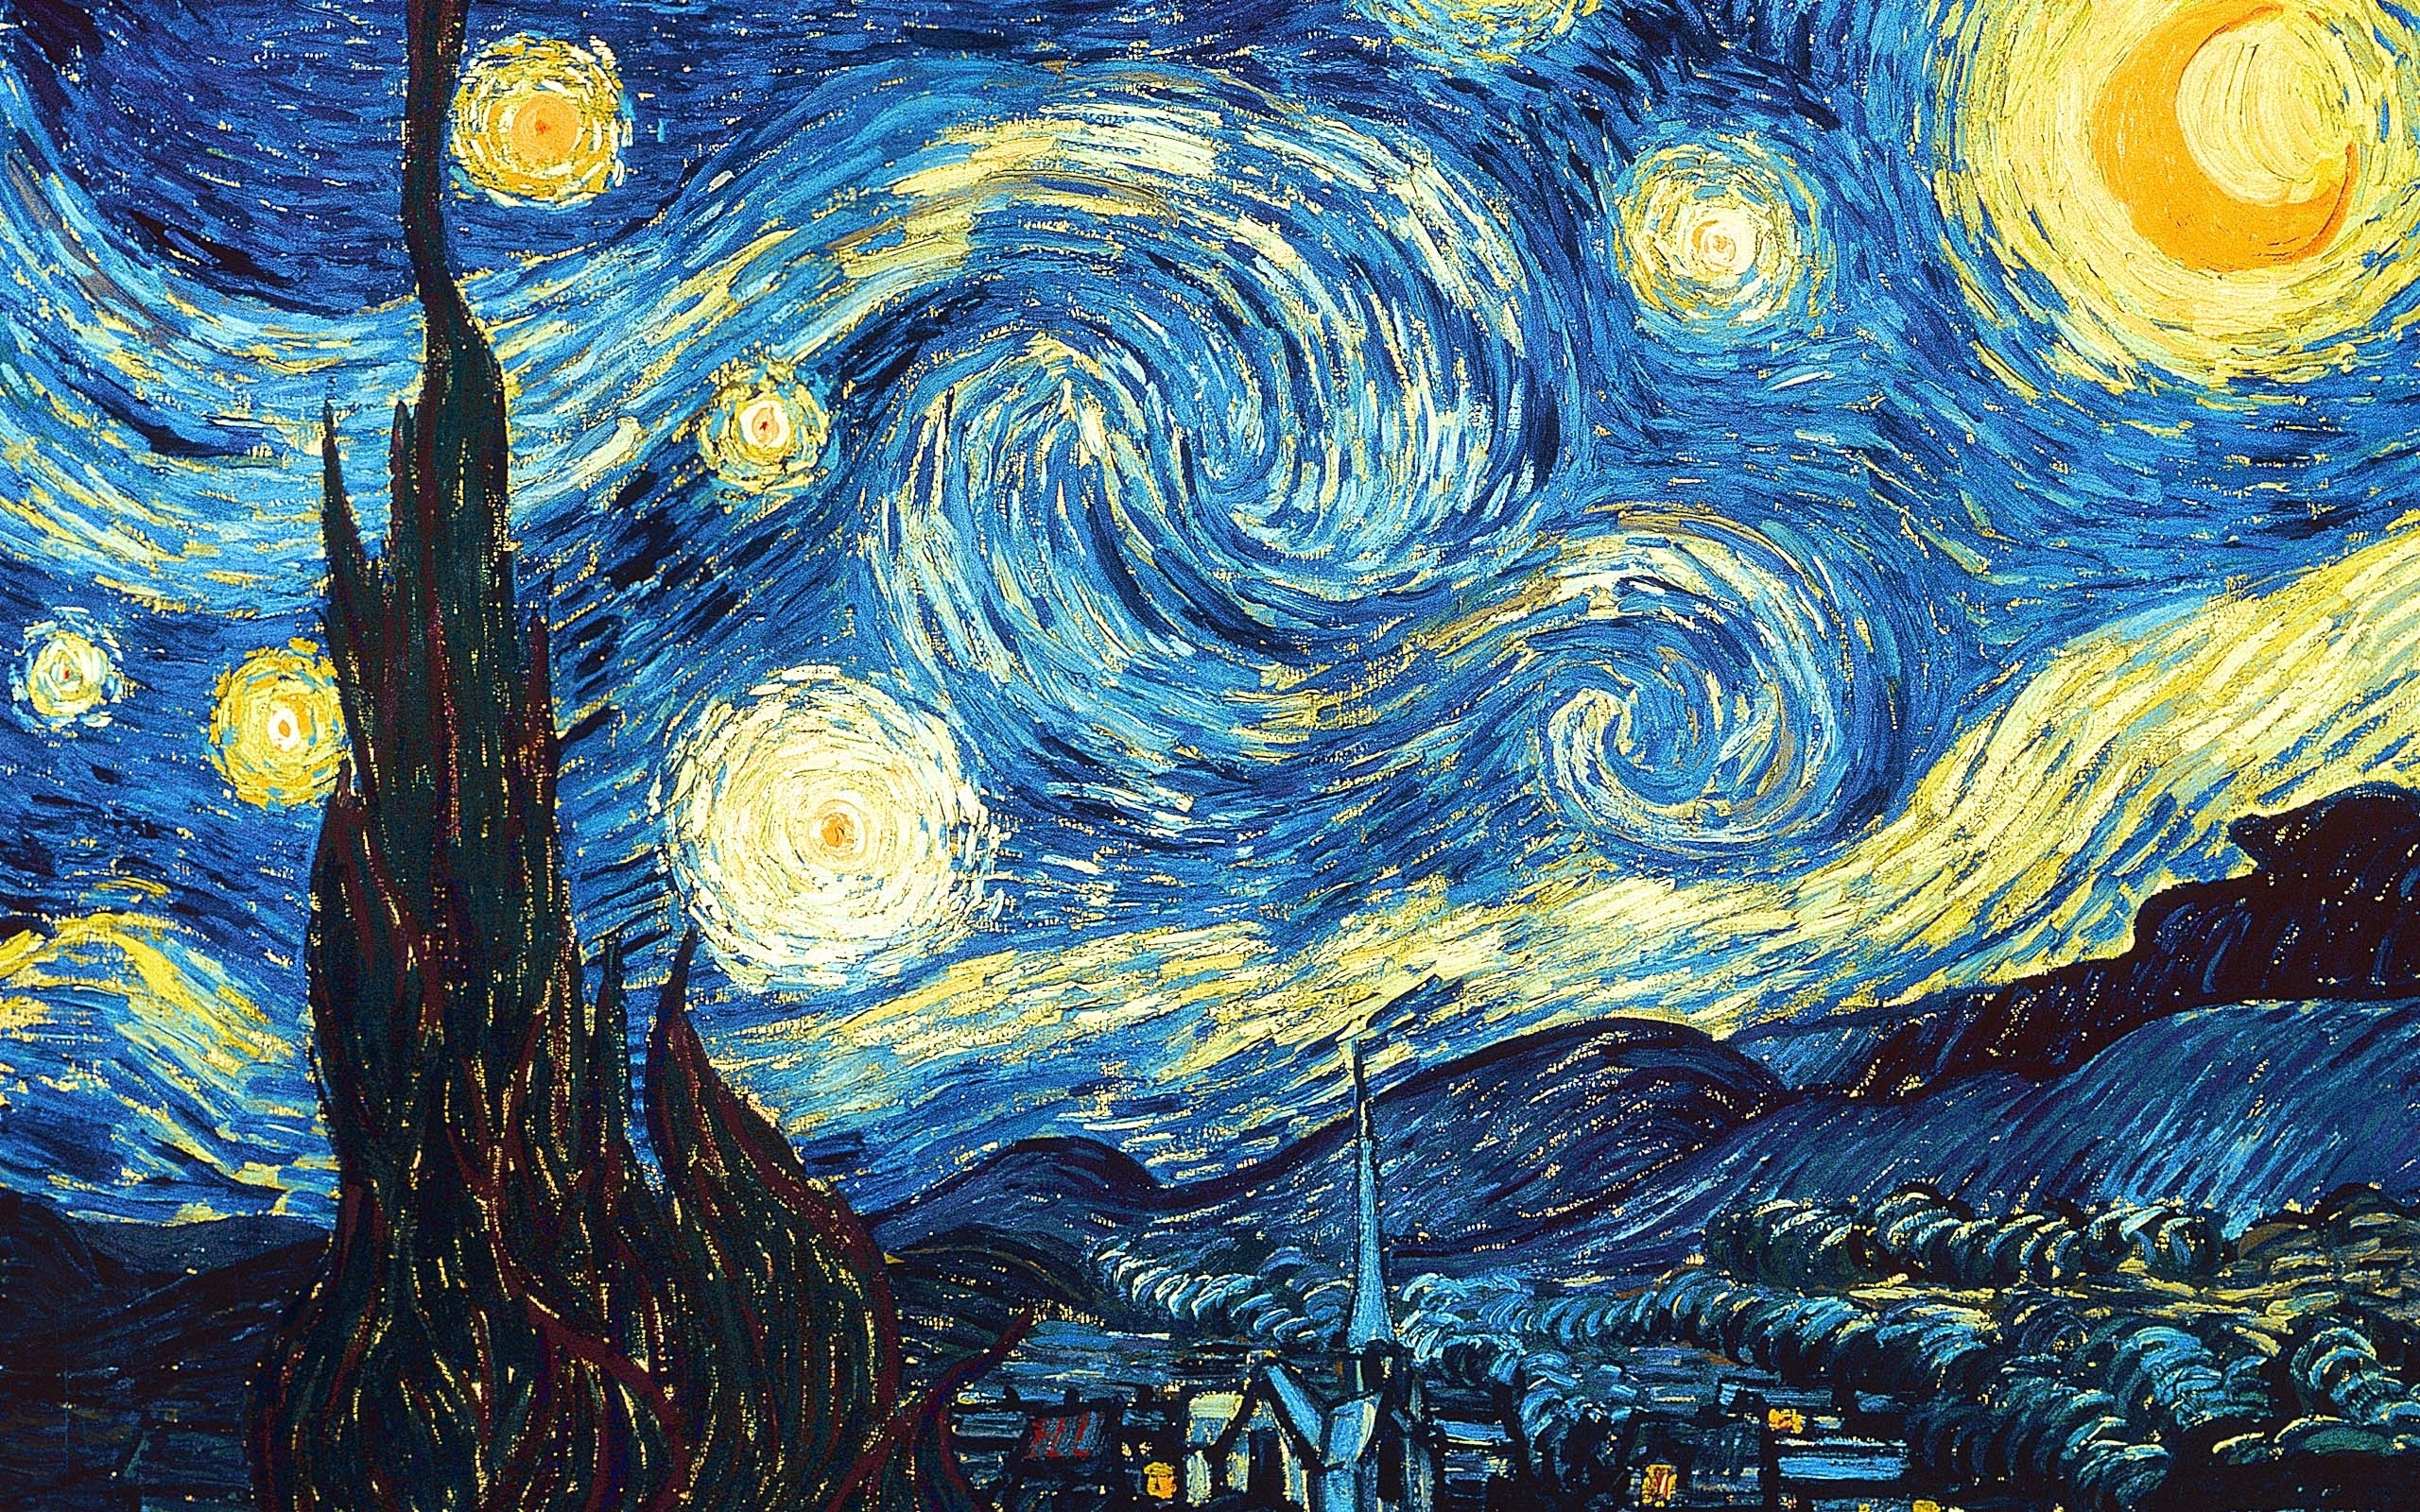 starry nightvincent van gogh full hd fond d'écran and arrière